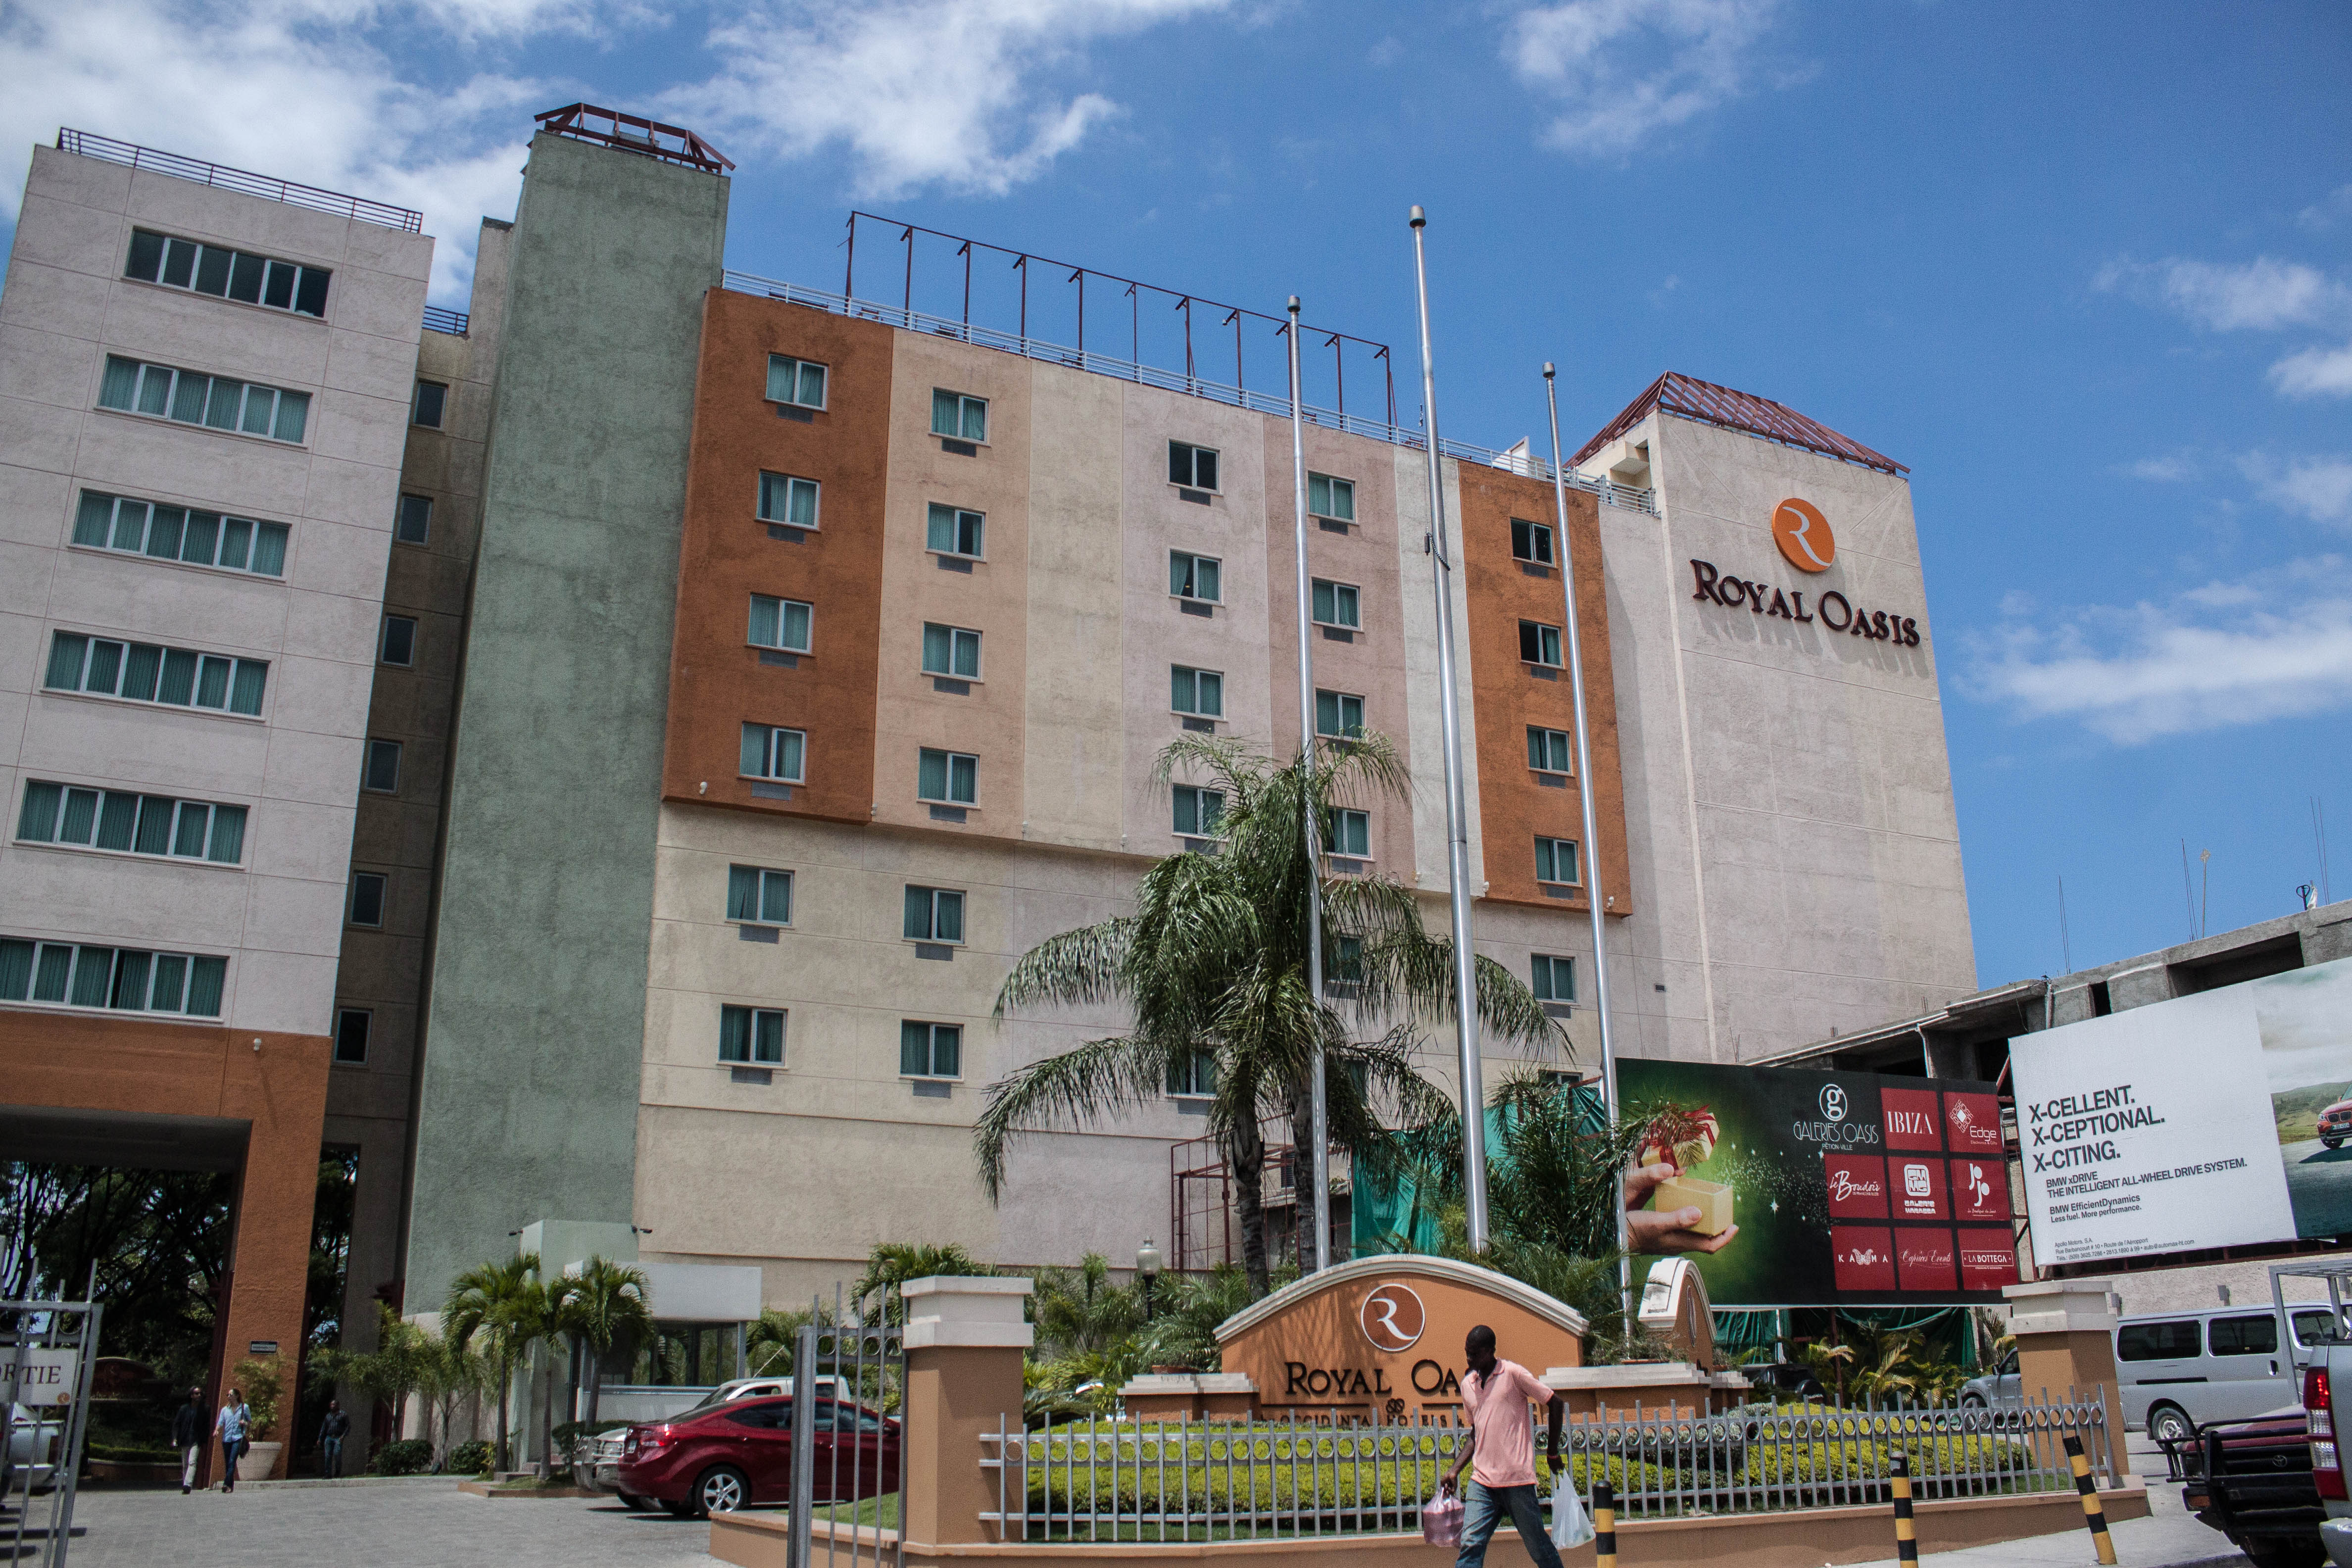 Hotel Royal Oasis by Occidental en Petion Ville, la zona alta de Port-au-Prince. @ifresnillo (cc) https://www.flickr.com/photos/frostis/14045994927/in/set-72157645378391726